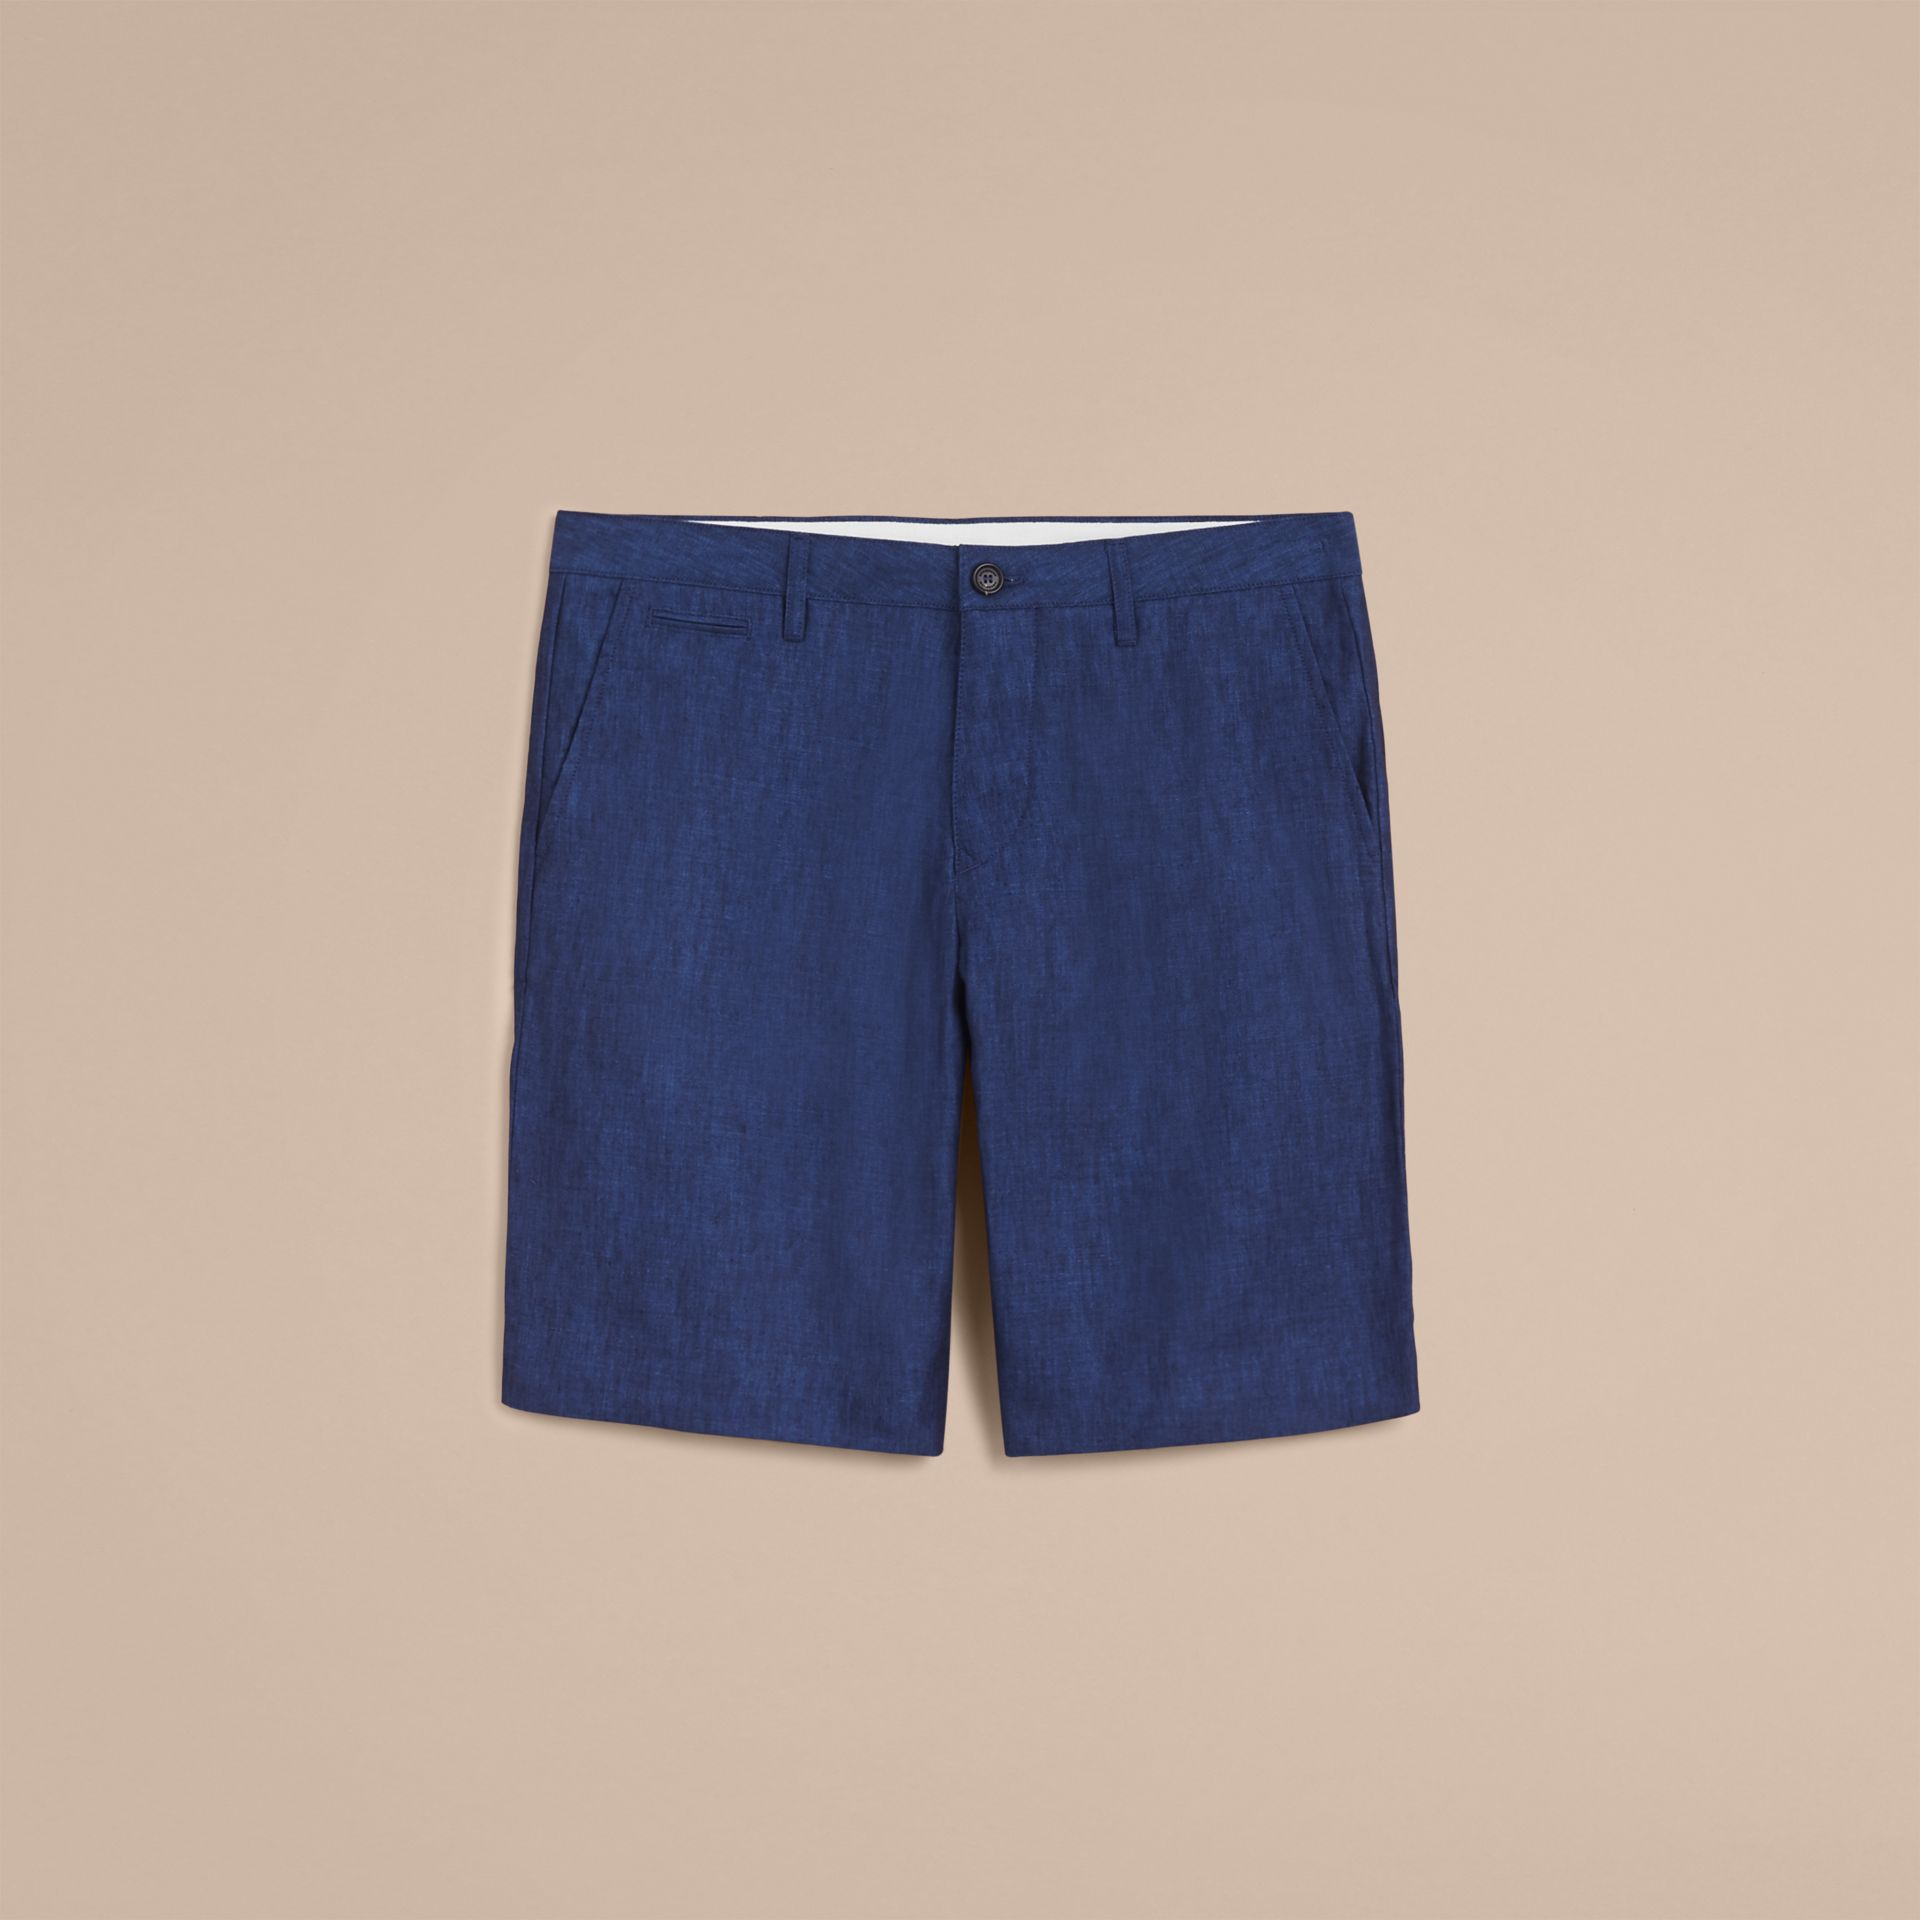 Lightweight Linen Shorts in Steel Blue - Men | Burberry - gallery image 4